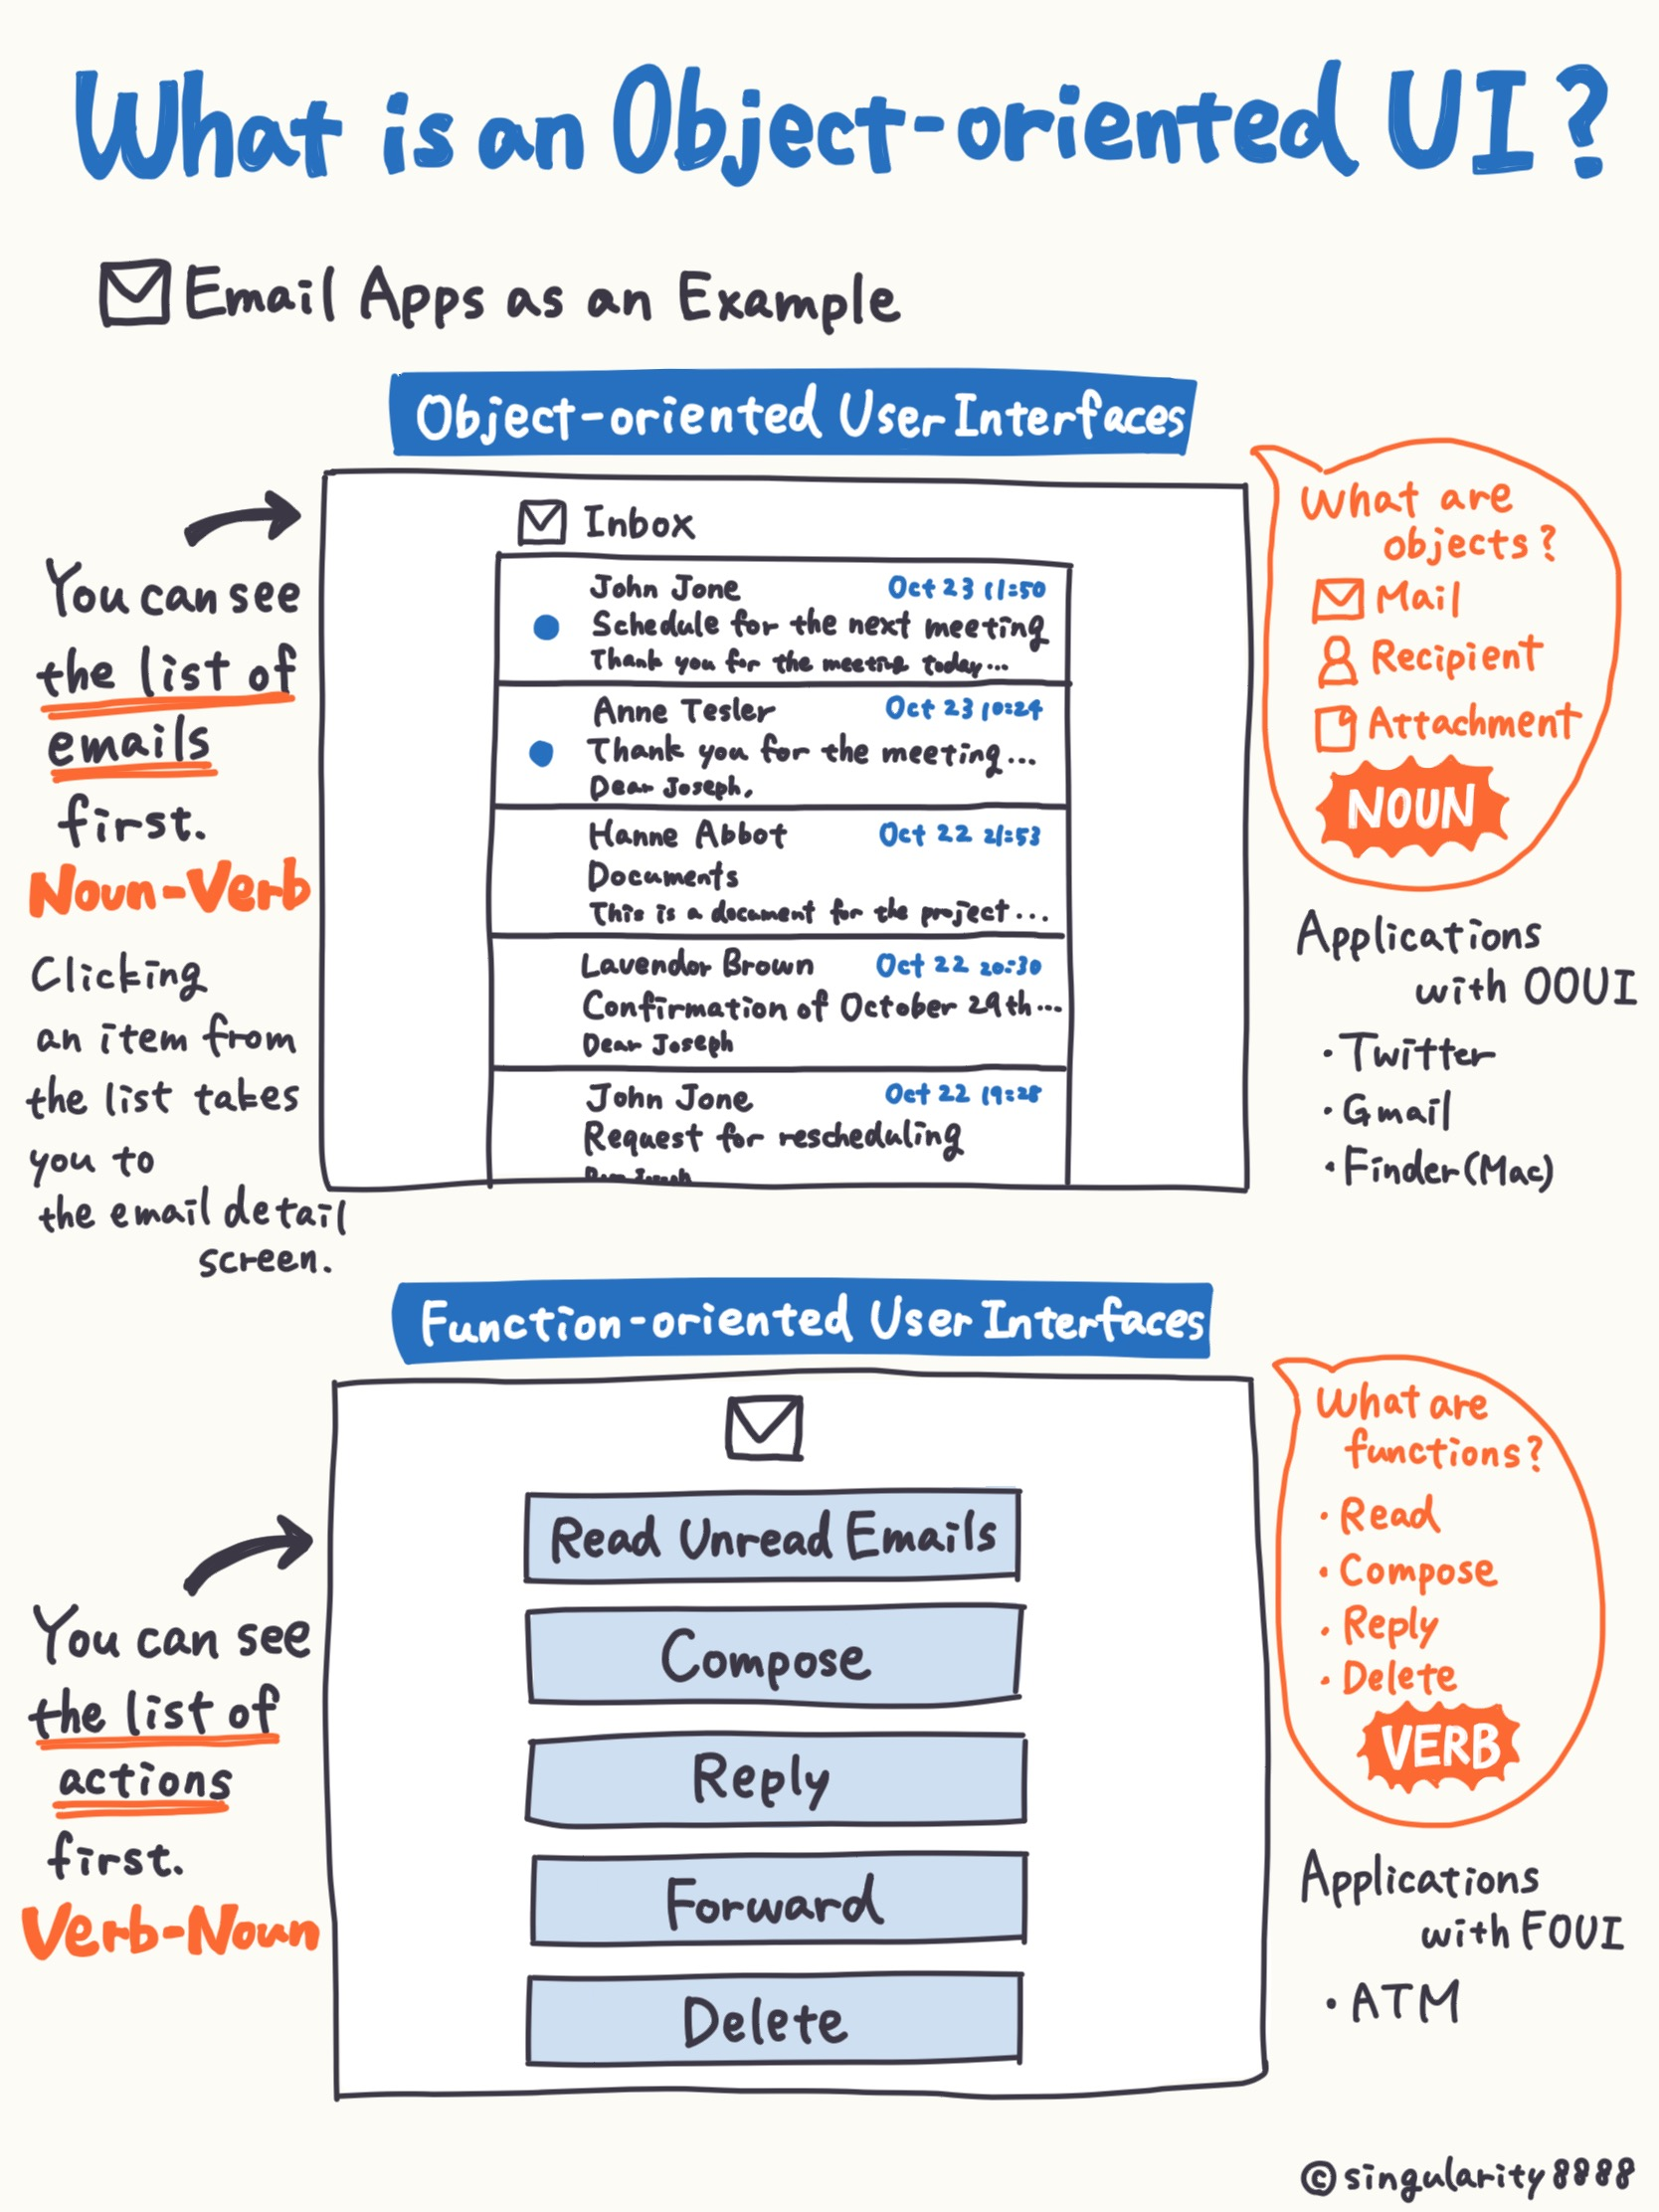 What is an object-oriented UI? Image (1/1)